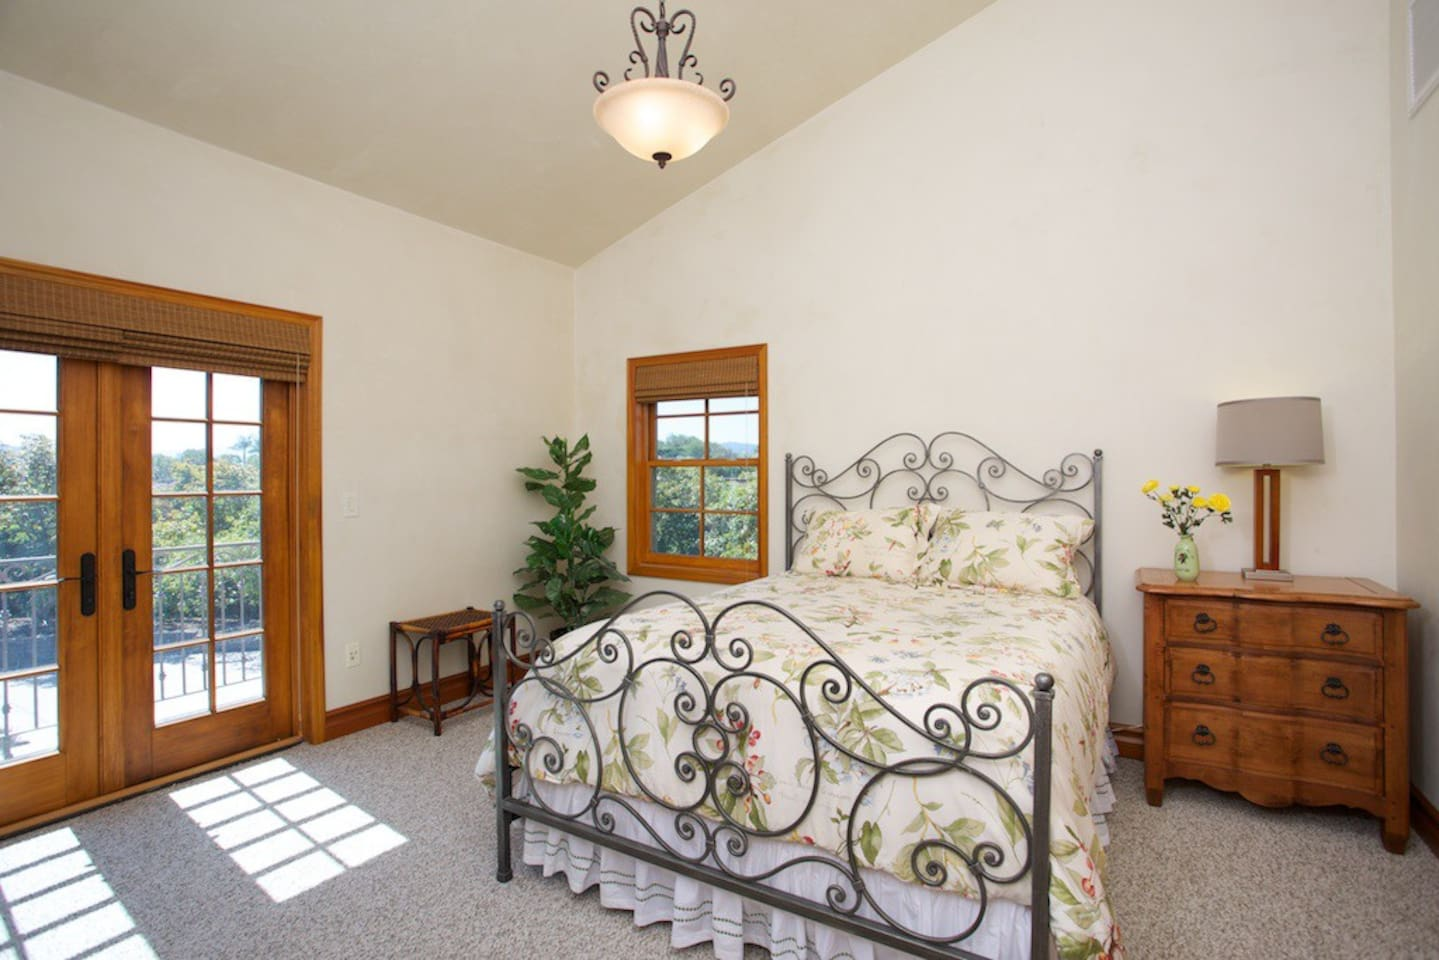 Furniture includes French Queen Bed, Bassett Chest of Drawers and Night Table. Double French Doors open to Sunrise Balcony with a easterly panoramic view of Bonsall.